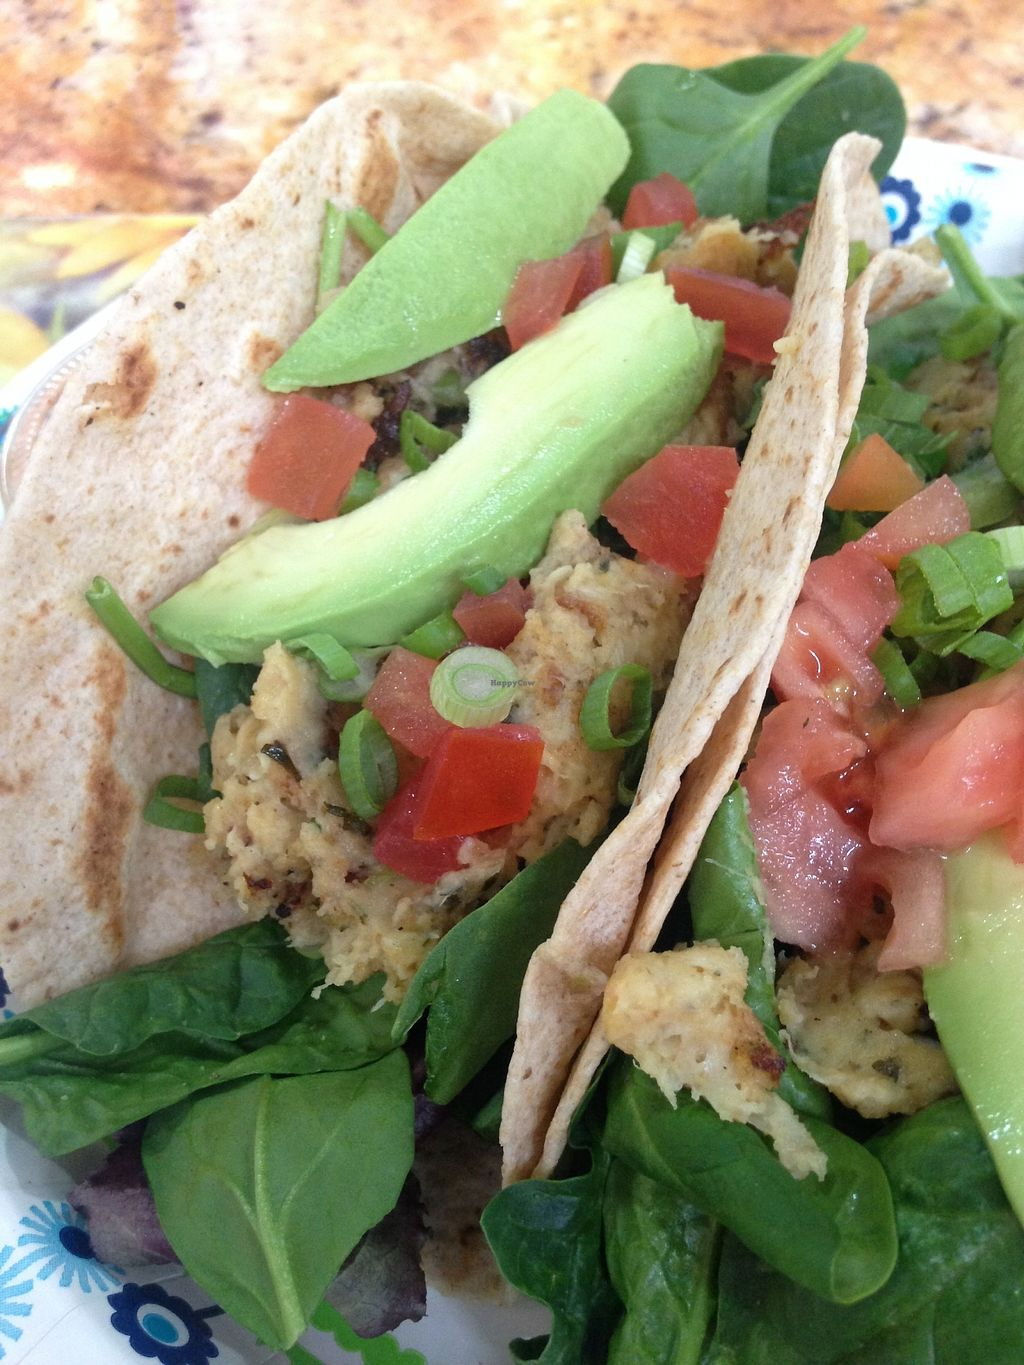 """Photo of Meals From The Heart Cafe  by <a href=""""/members/profile/BreannaWhite"""">BreannaWhite</a> <br/>vegan crab cake tacos <br/> March 27, 2018  - <a href='/contact/abuse/image/25883/376973'>Report</a>"""